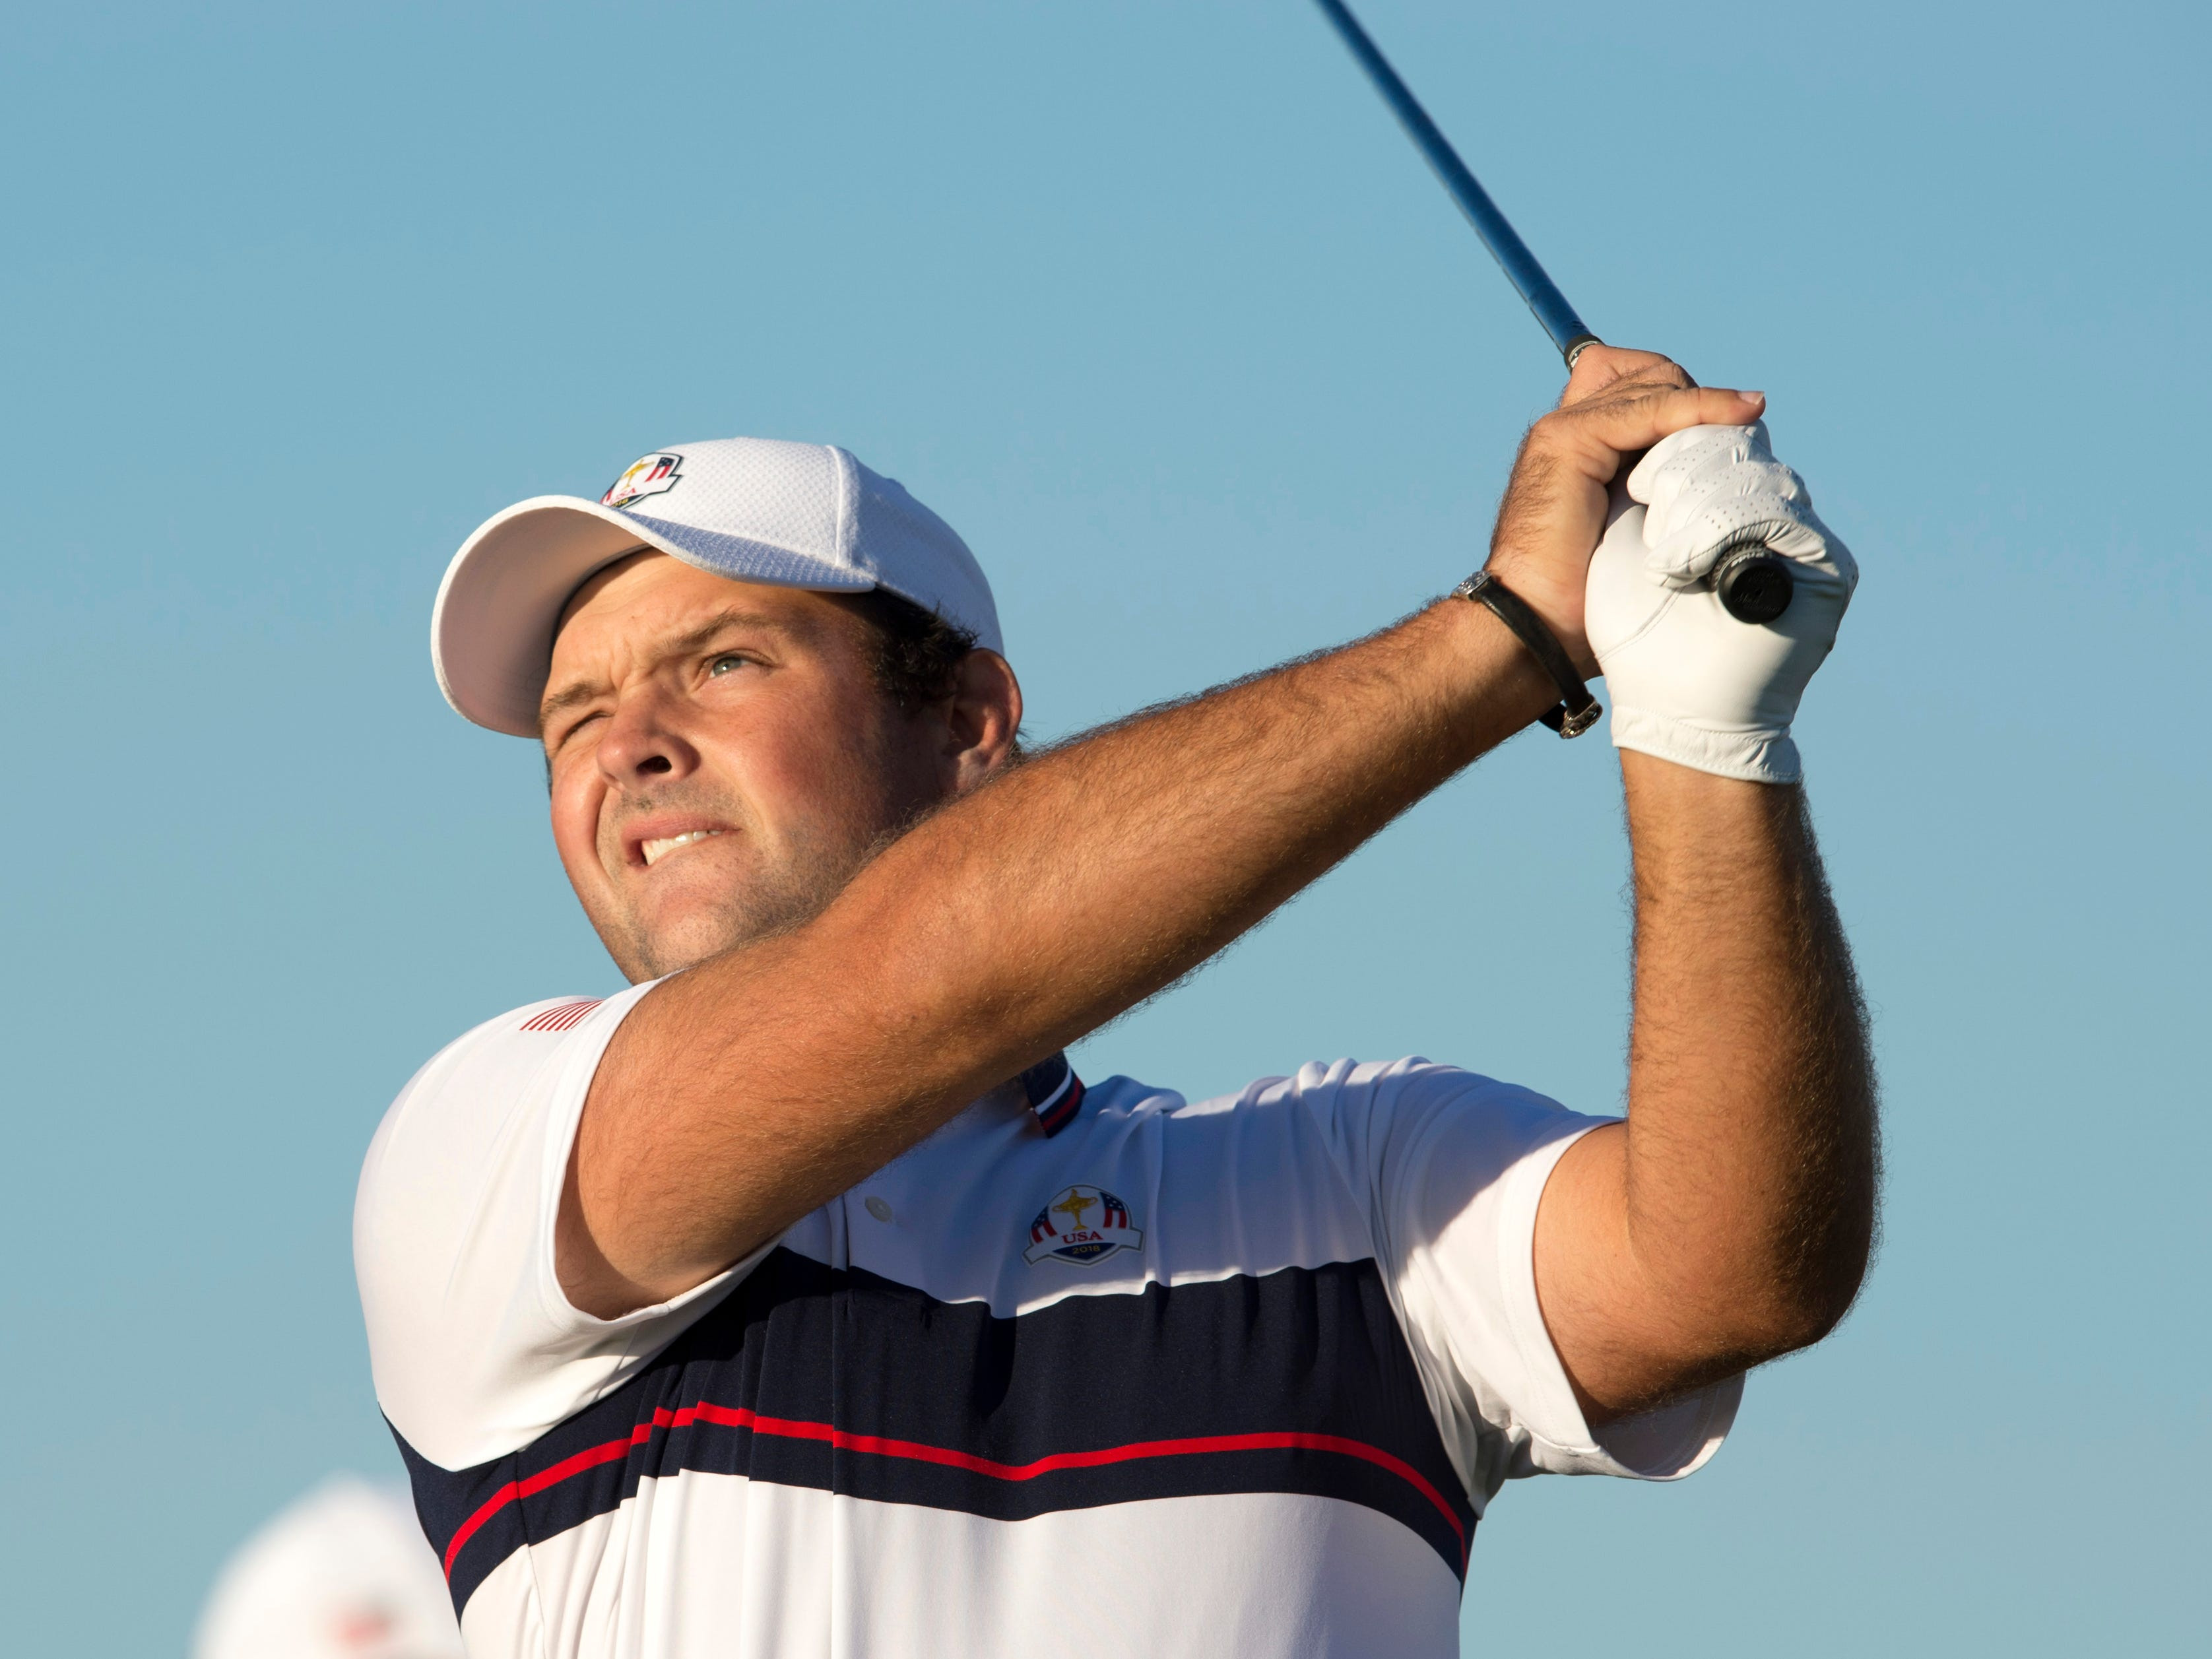 Patrick Reed on the driving range during a Ryder Cup practice round at Le Golf National.